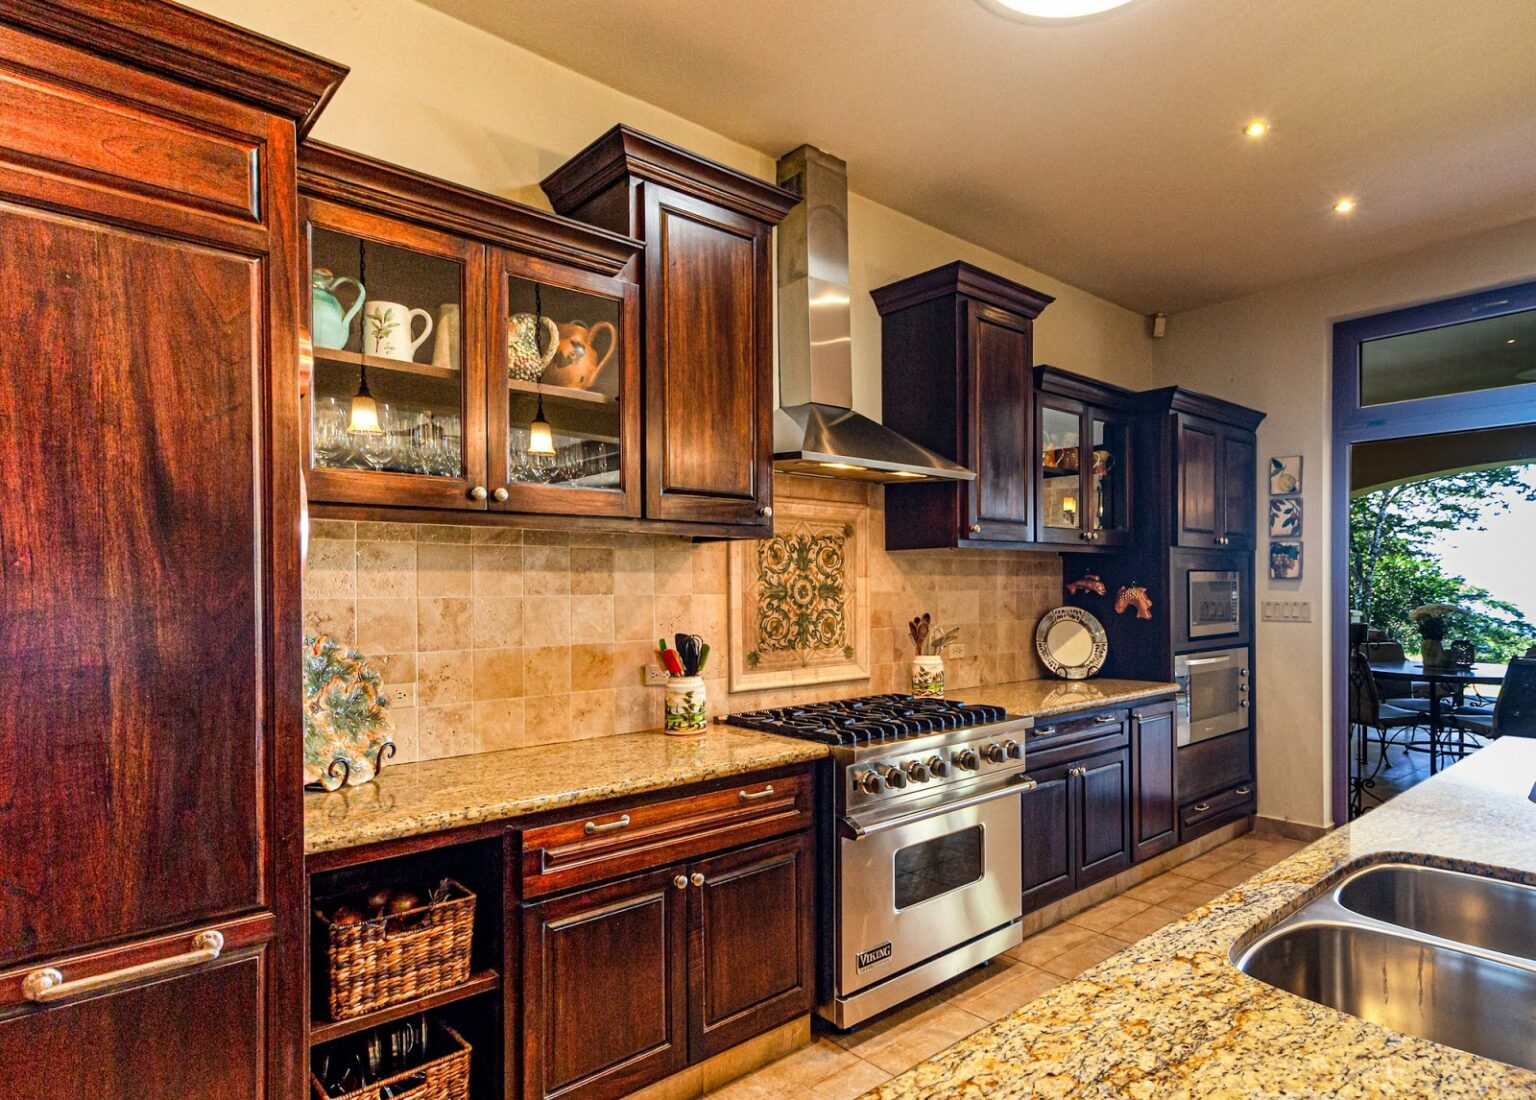 Does Refacing Cabinets Add Value